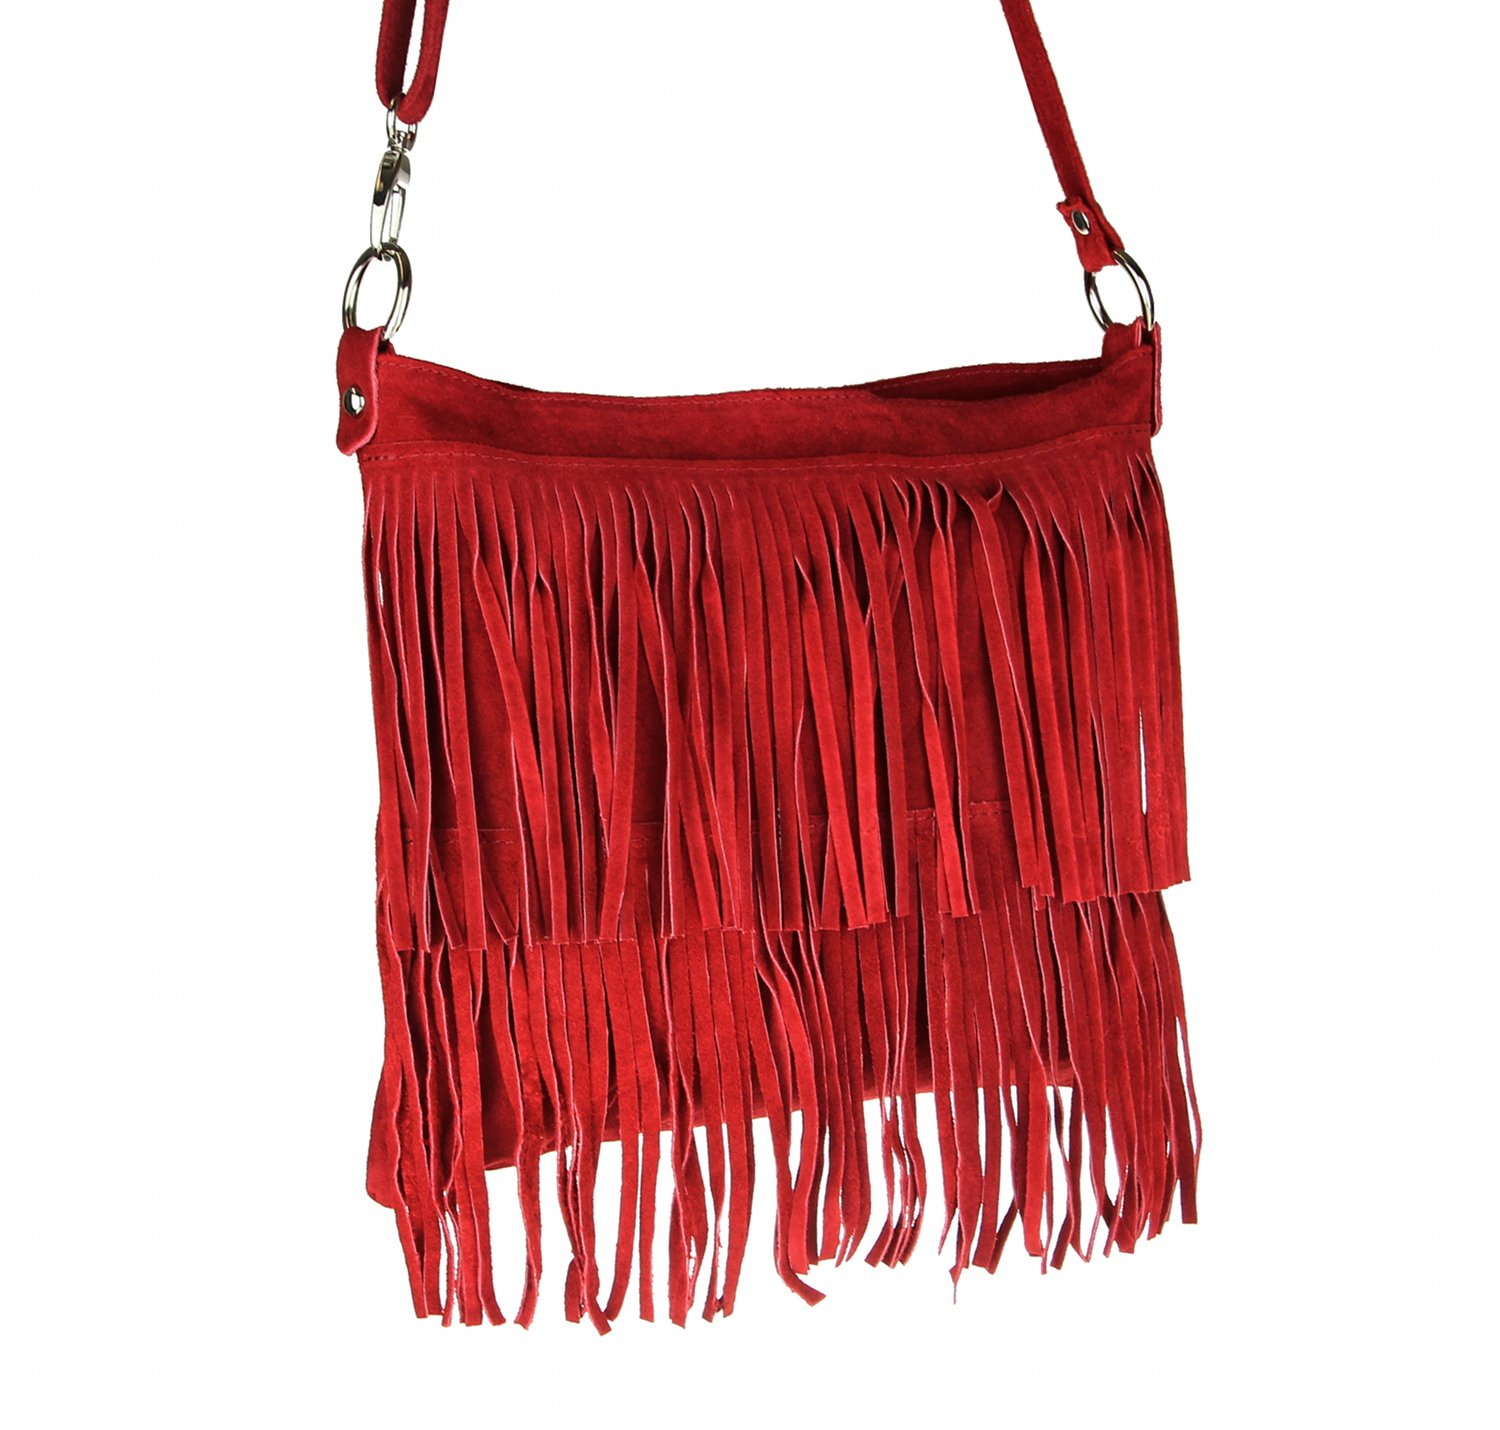 Made Italy, Borsa tote donna rosso Rot 32x30x5 cm (BxHxT)